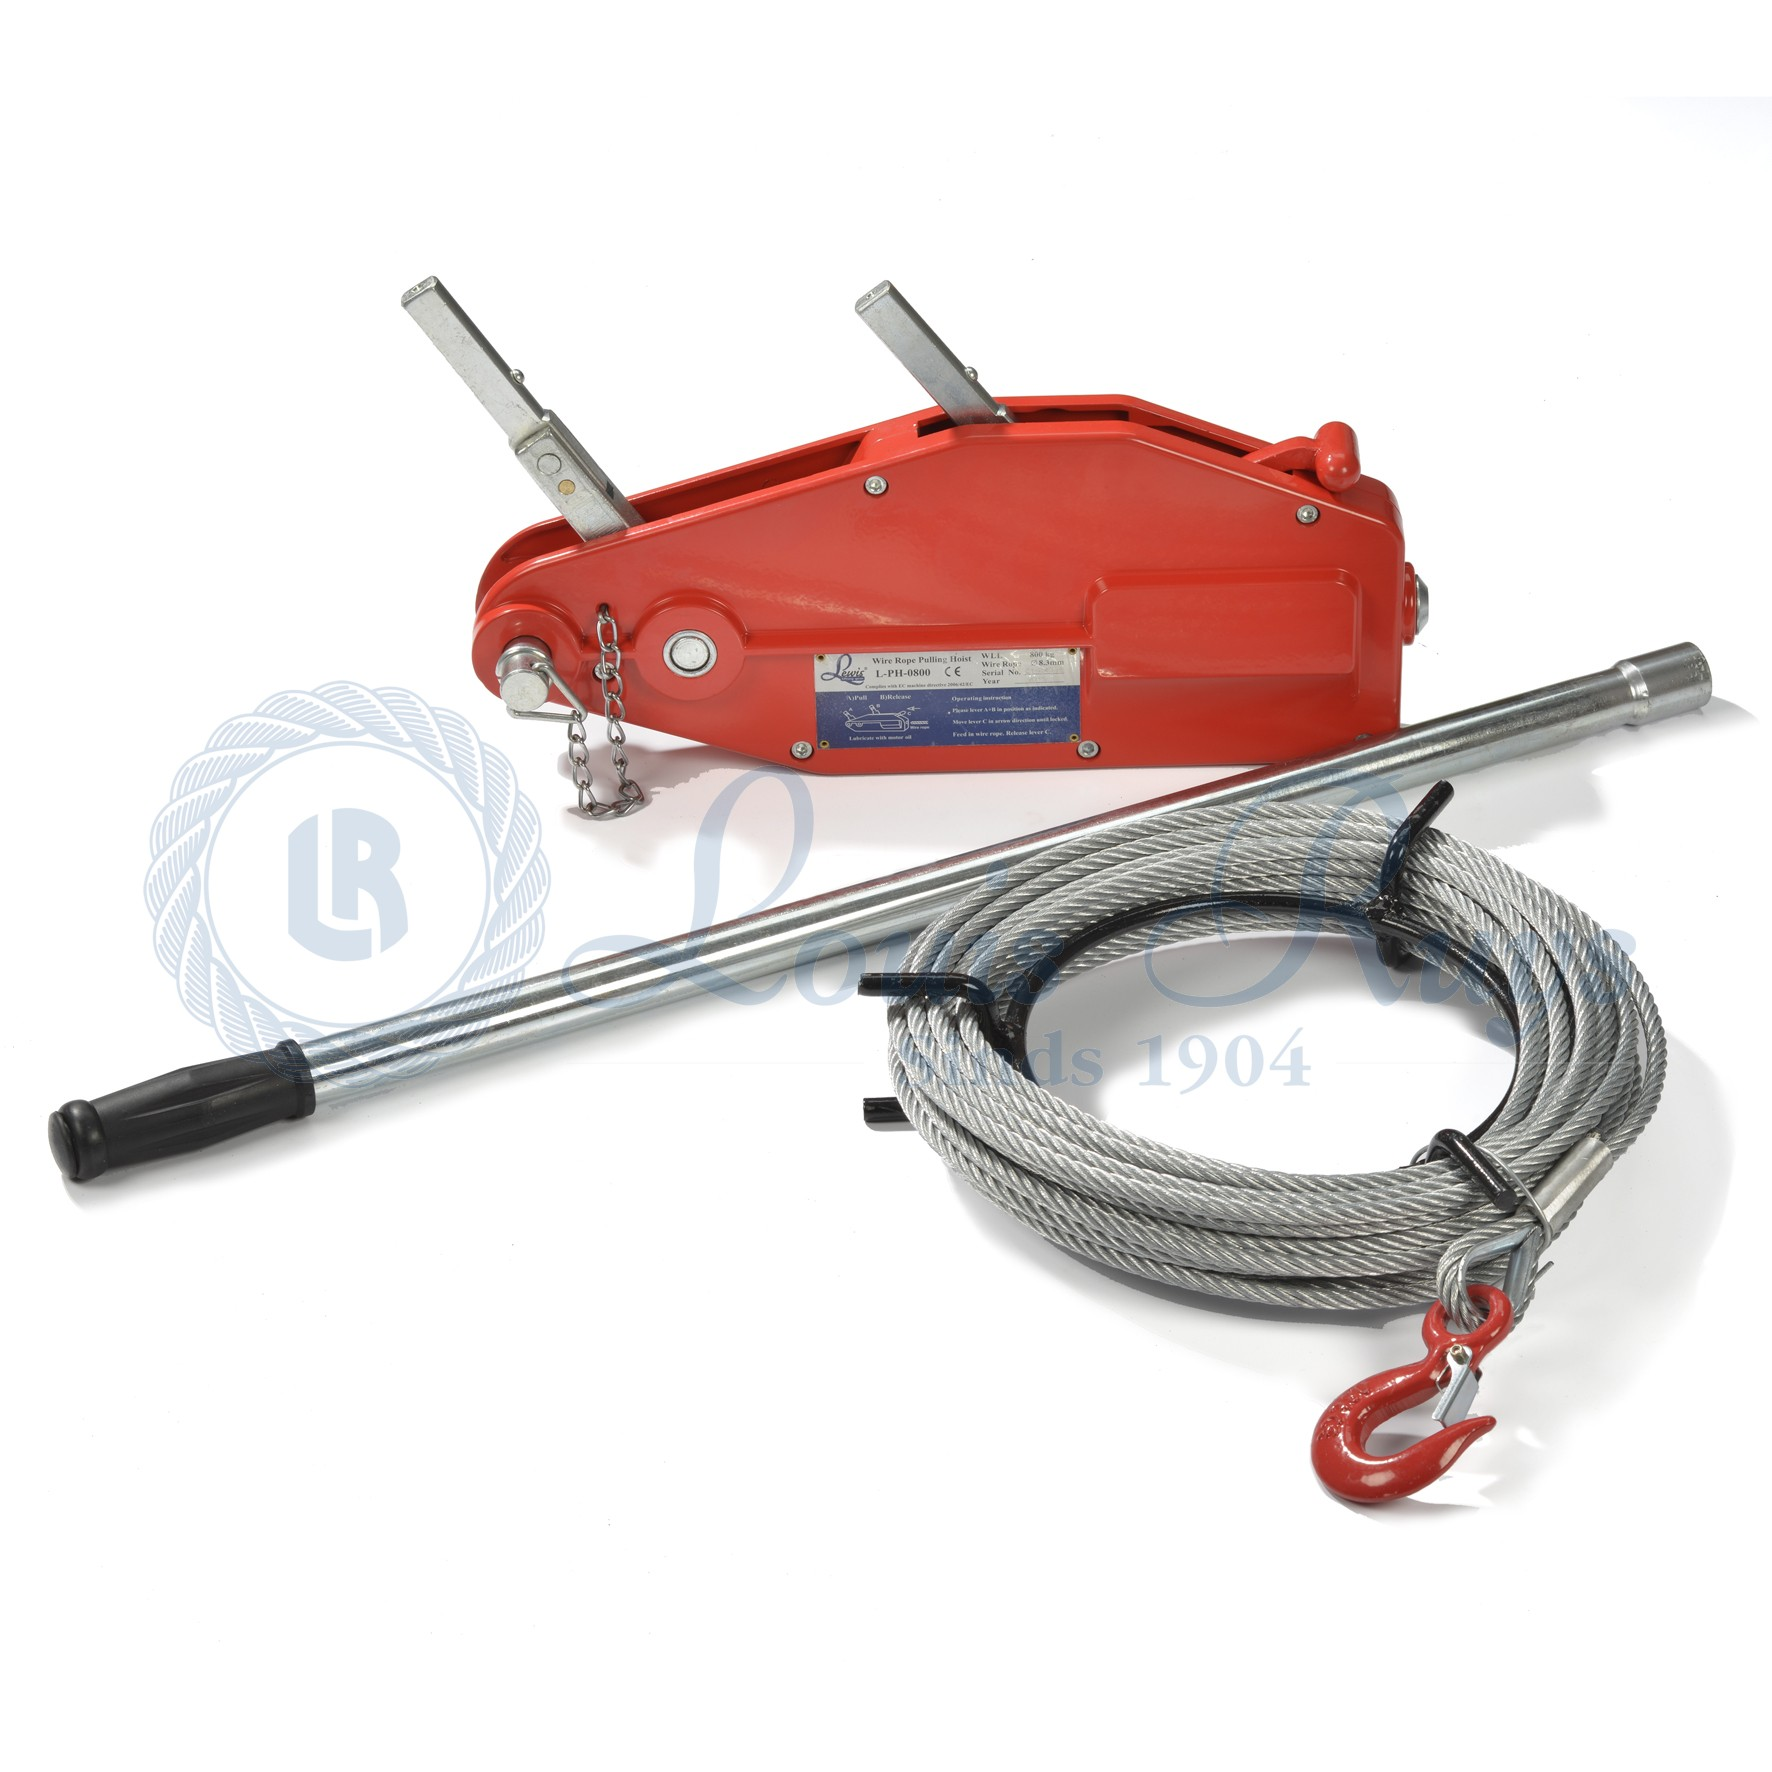 Lewis wire rope pulling hoists - Louis Ruys